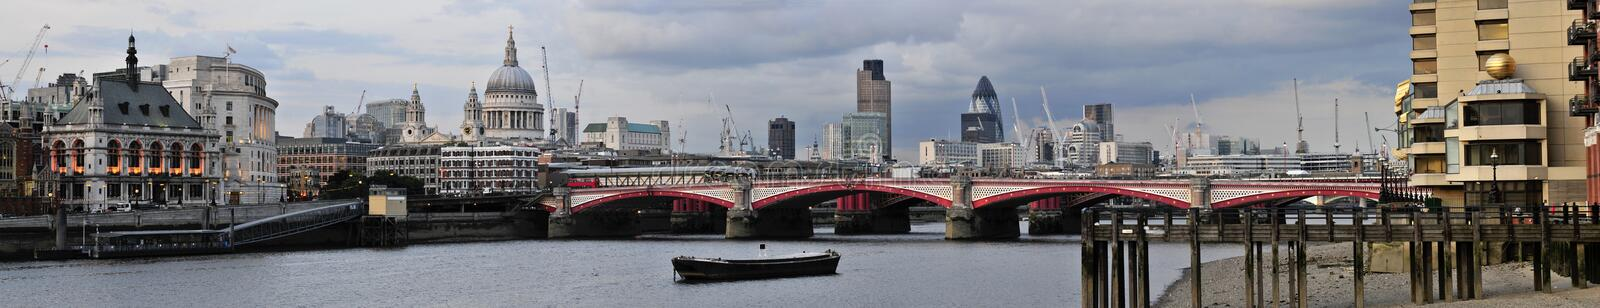 Download London Thames skyline stock image. Image of financial - 5797727